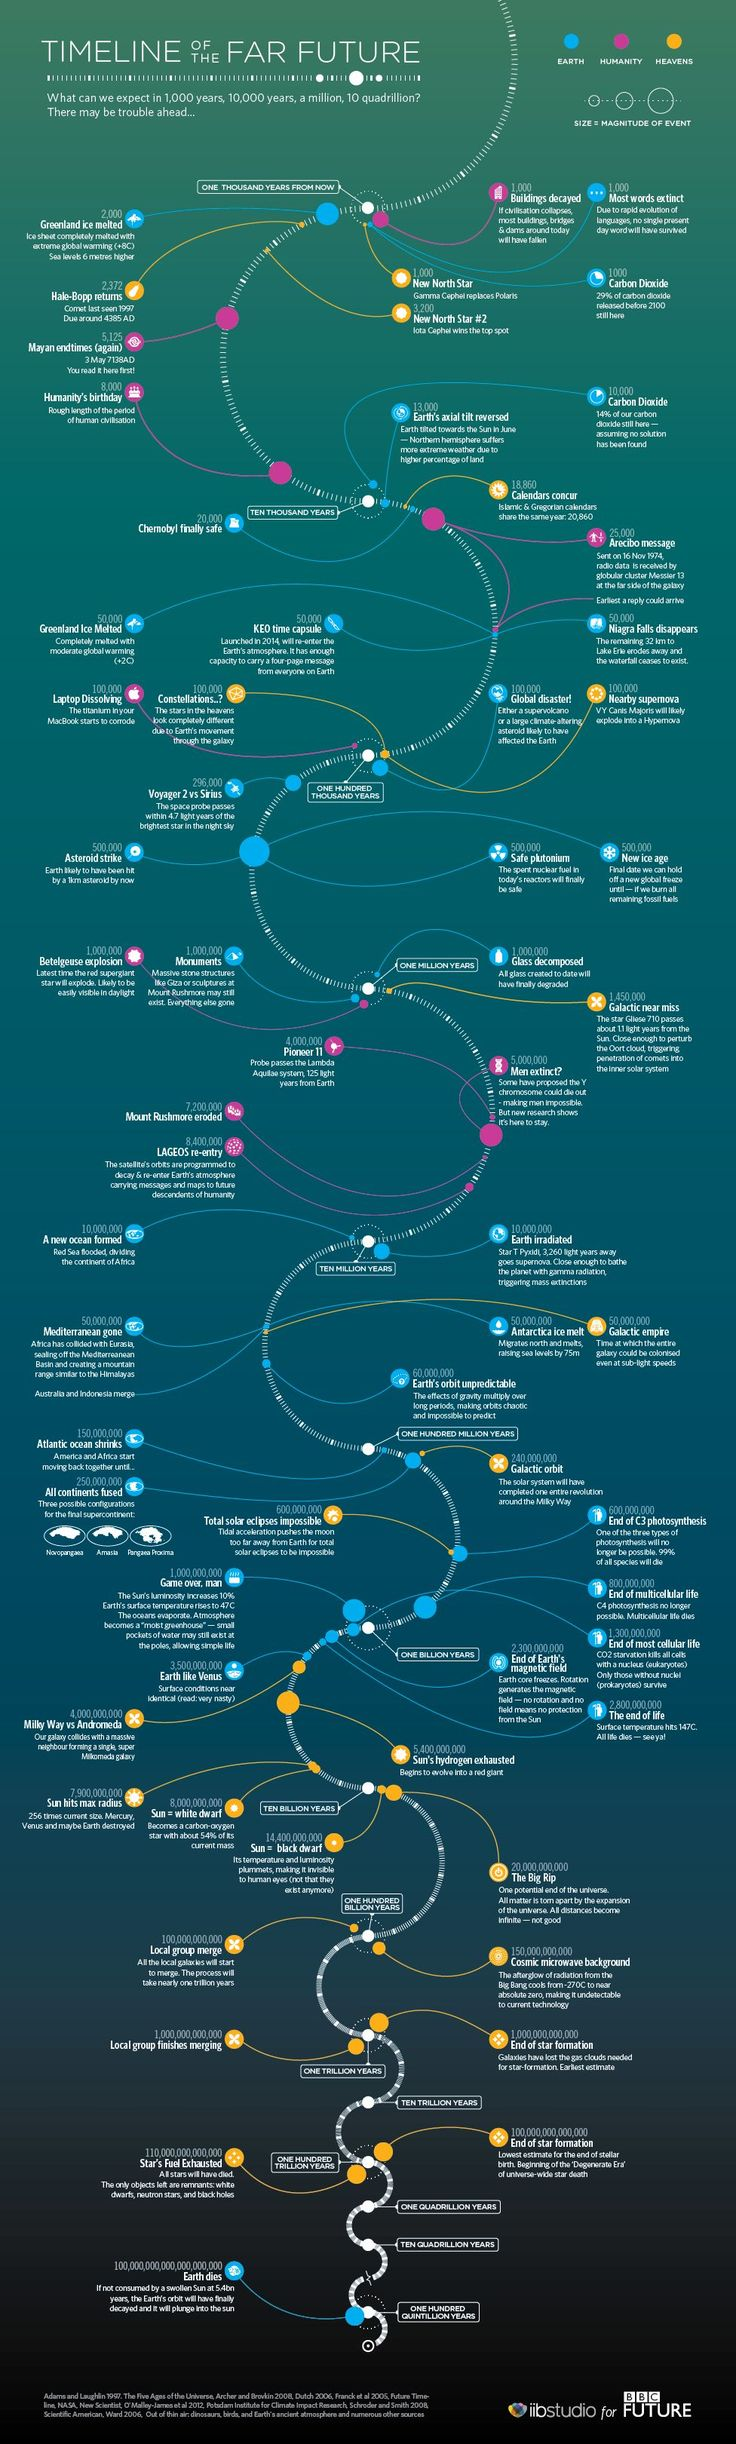 The BBC future timeline infographic is